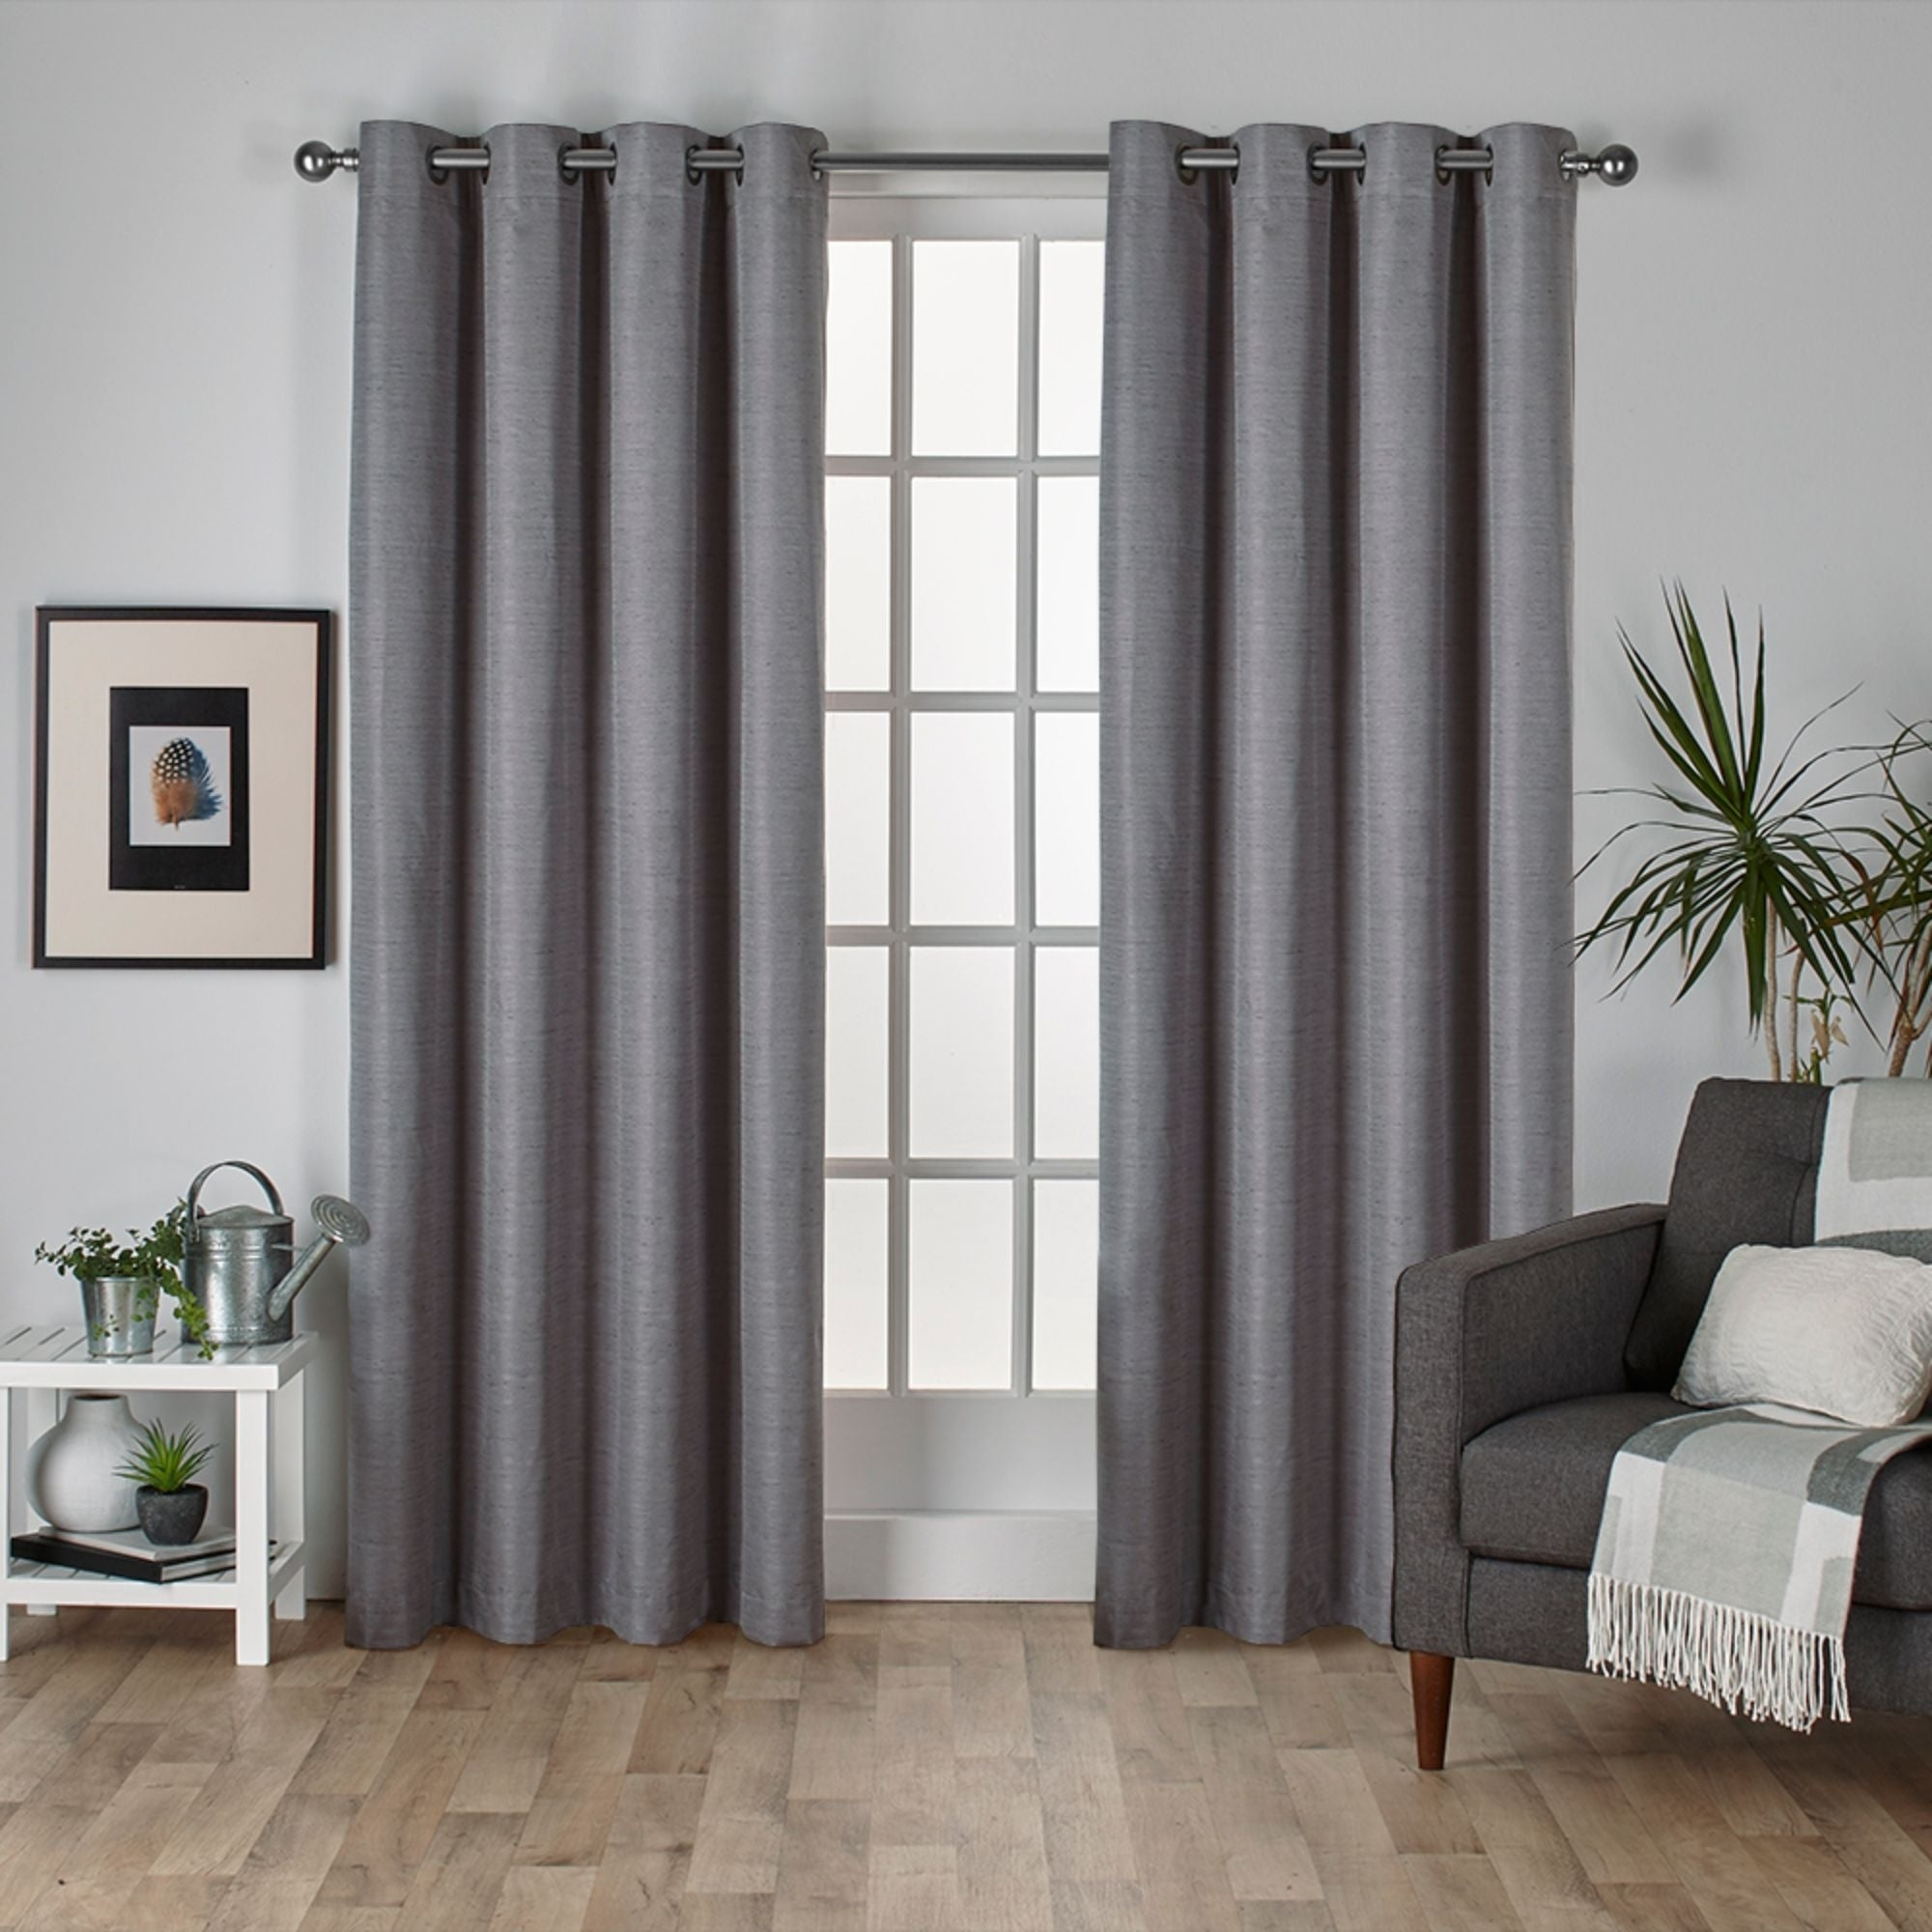 Porch & Den Patchen Raw Silk Thermal Insulated Grommet Top Curtain Panel Pair Regarding Thermal Textured Linen Grommet Top Curtain Panel Pairs (View 2 of 30)